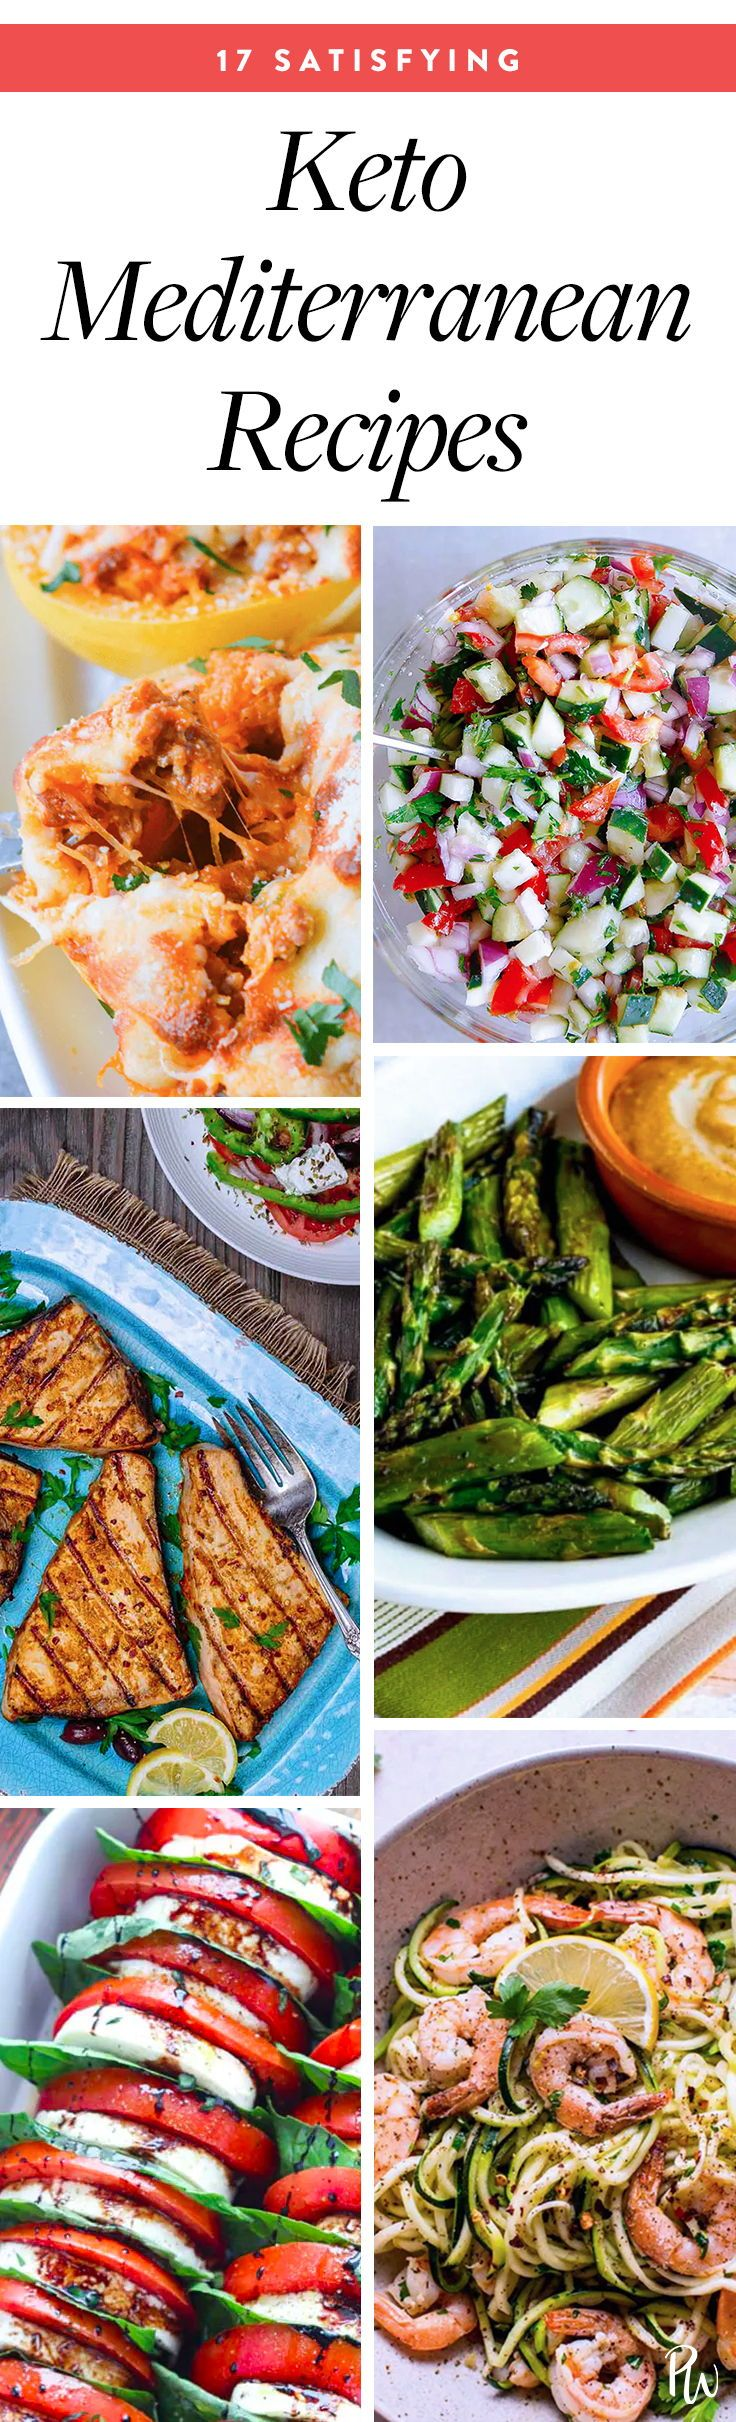 23 Mediterranean Recipes That Are On The Keto Diet Mediterranean Recipes Keto Diet Recipes Mediterranean Diet Recipes